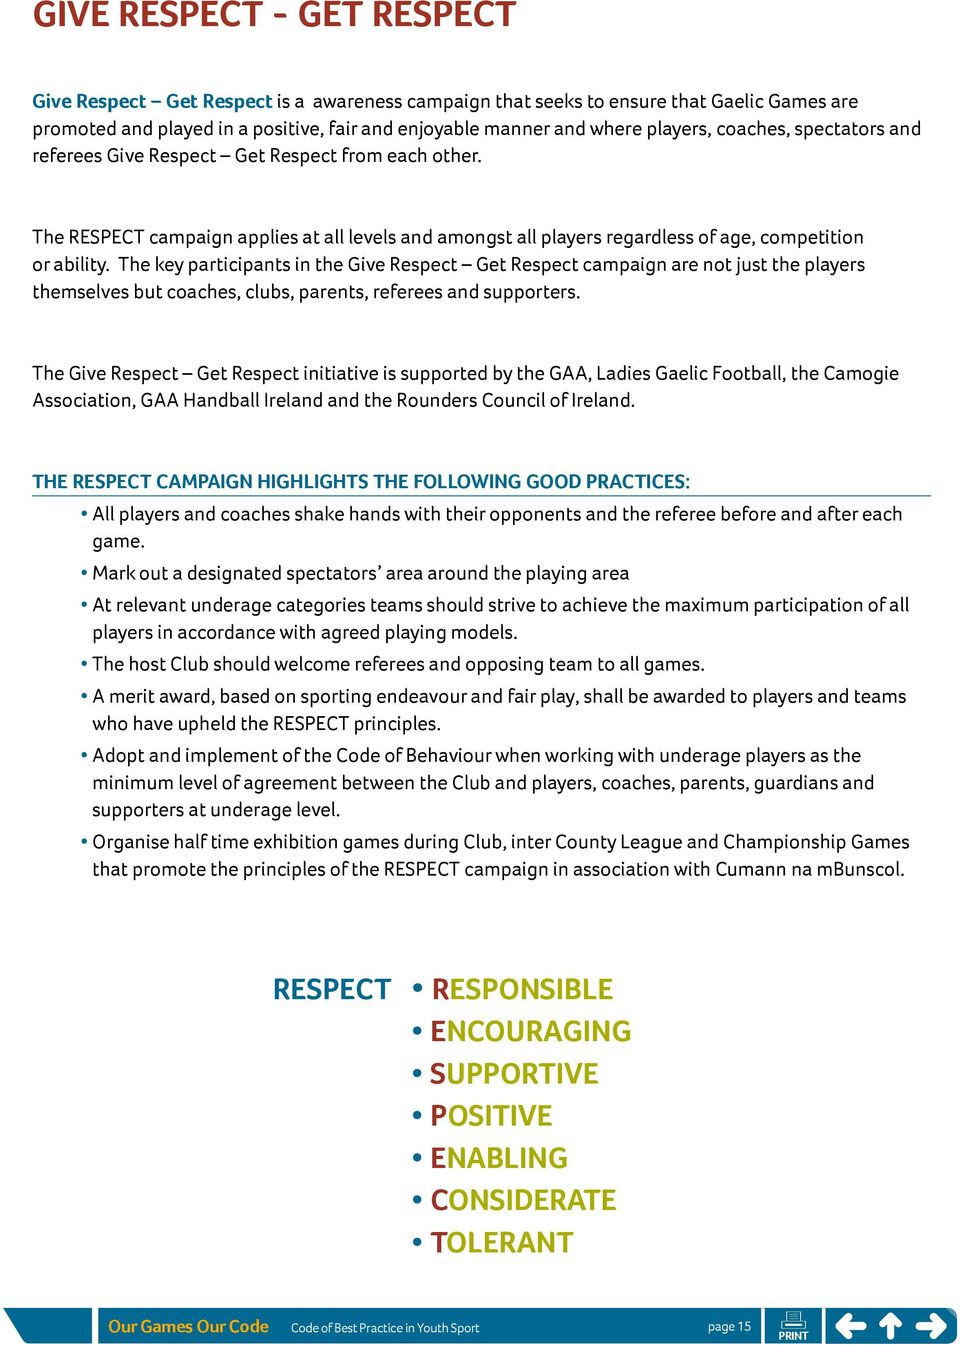 The key participants in the Give Respect Get Respect campaign are not just the players themselves but coaches, clubs, parents, referees and supporters.